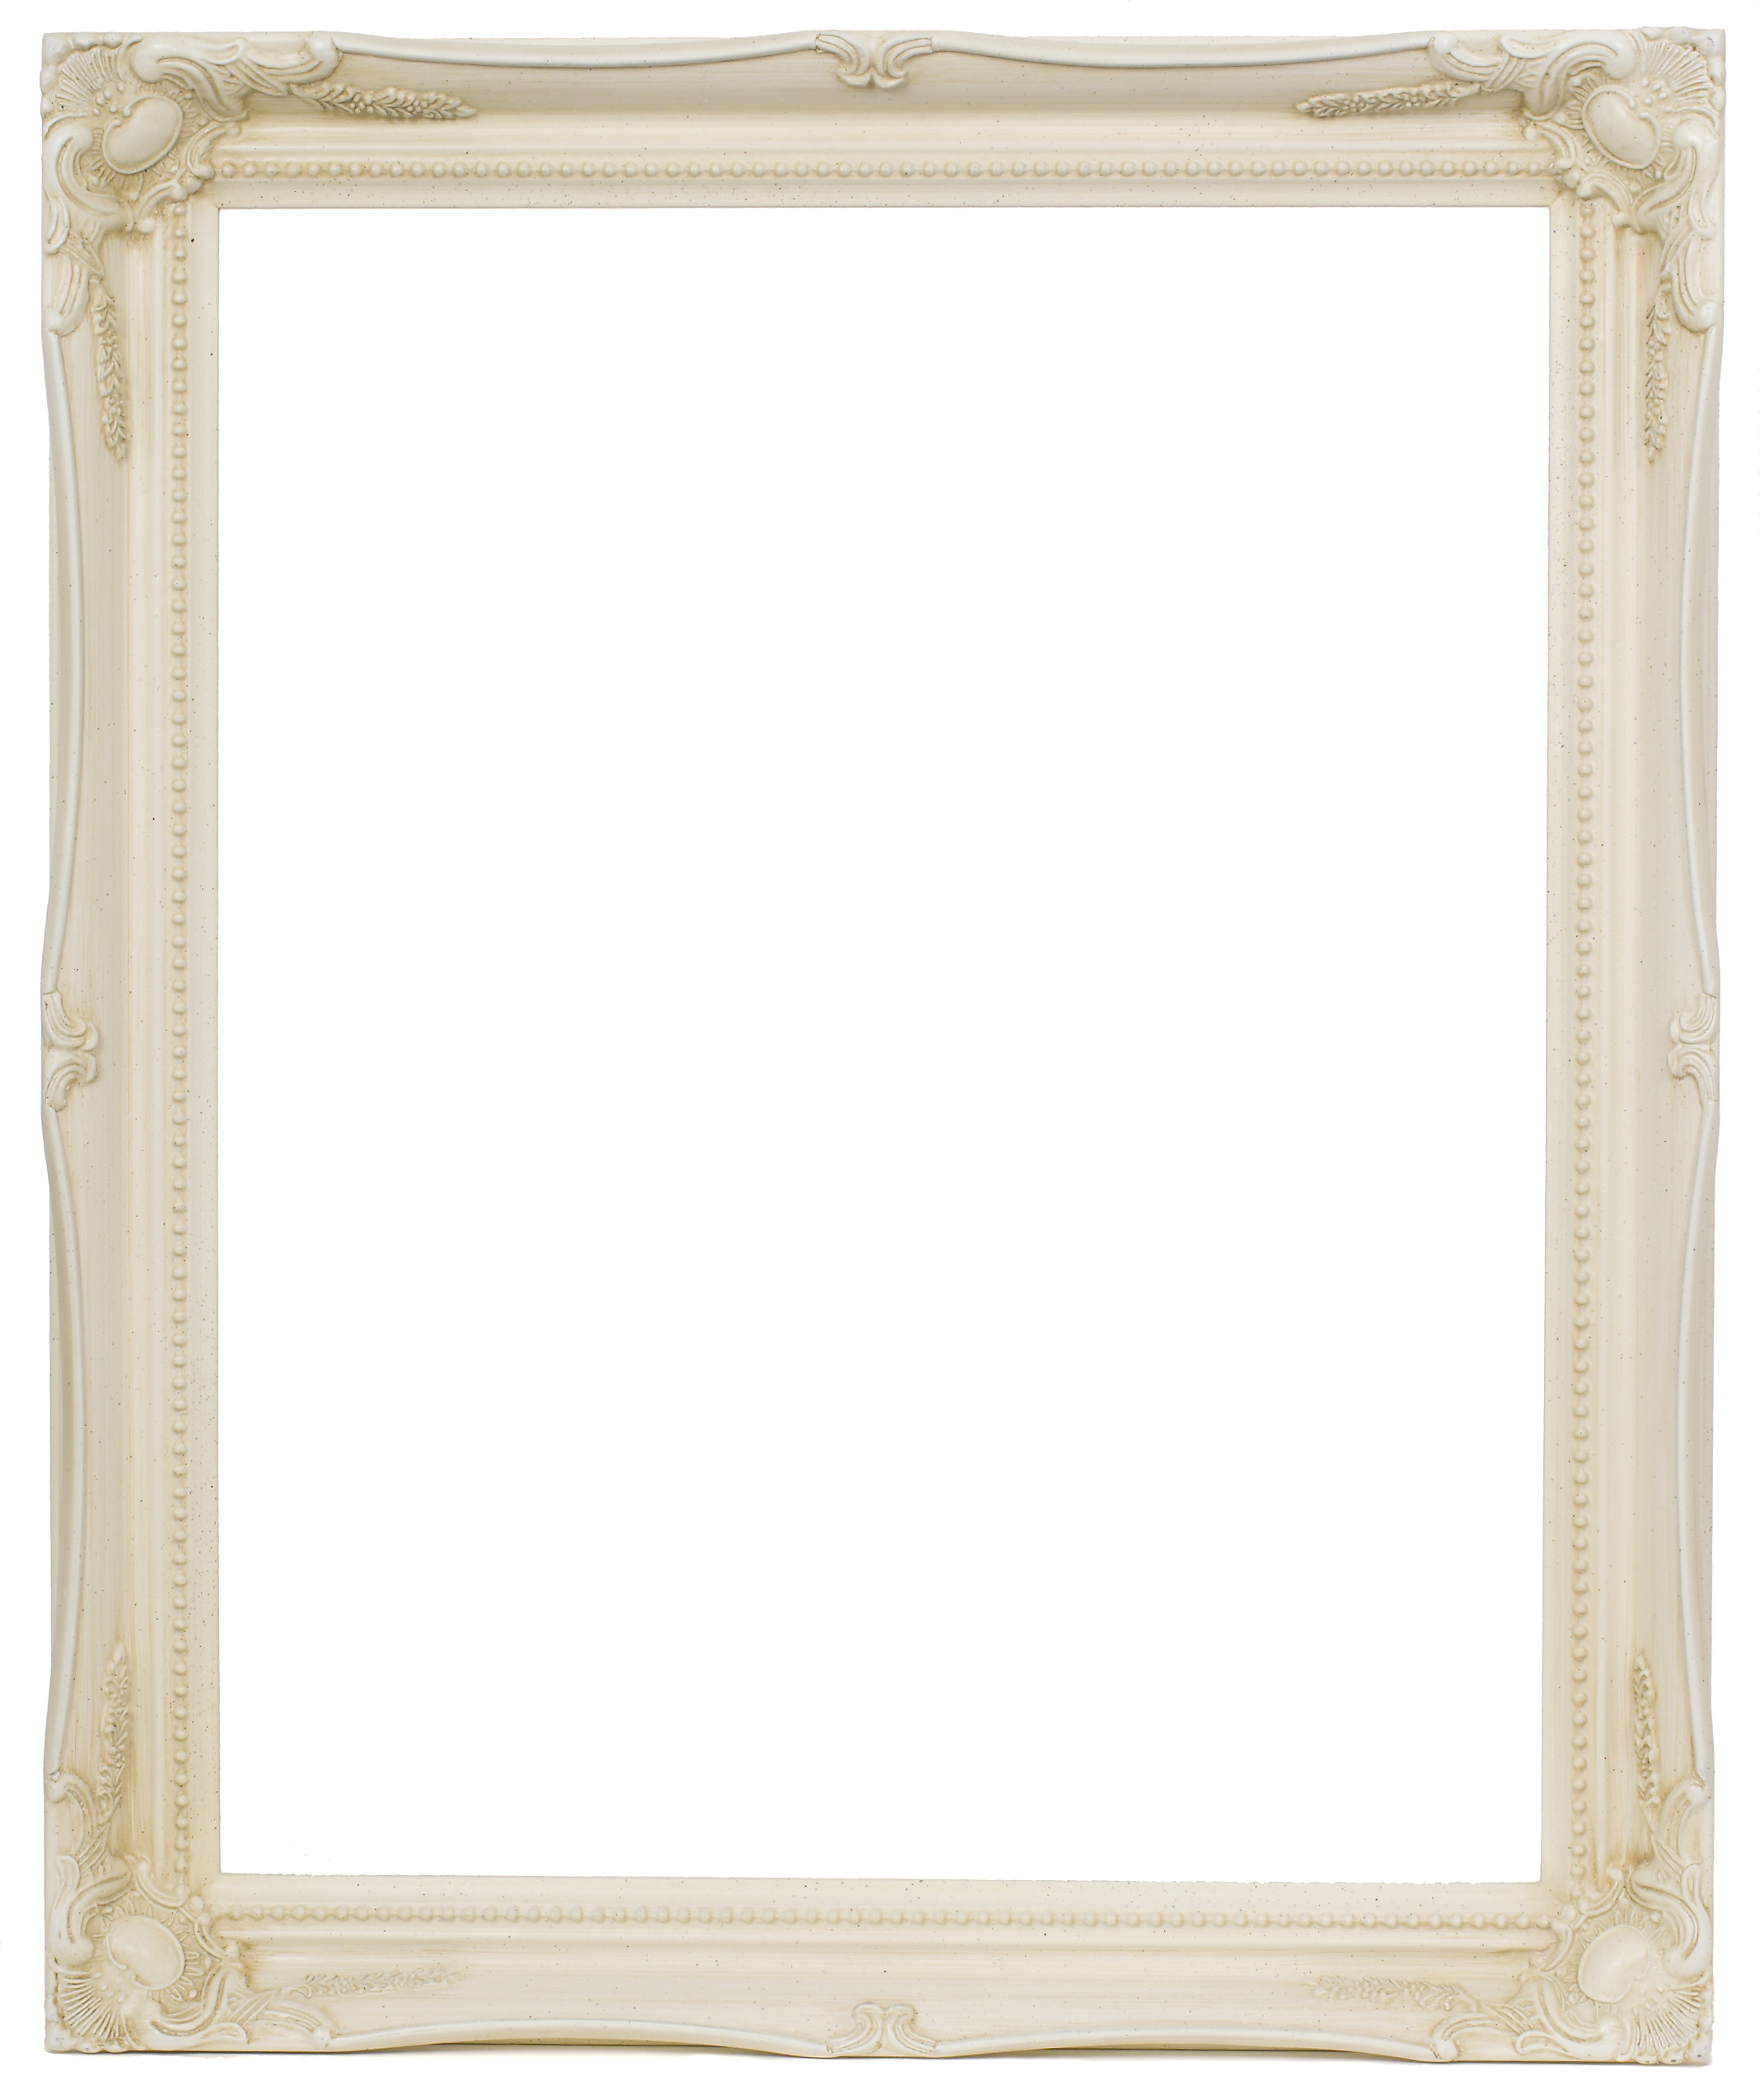 "Swept Antique Effect Wooden Frames 2"" Empty Or Plastic ..."